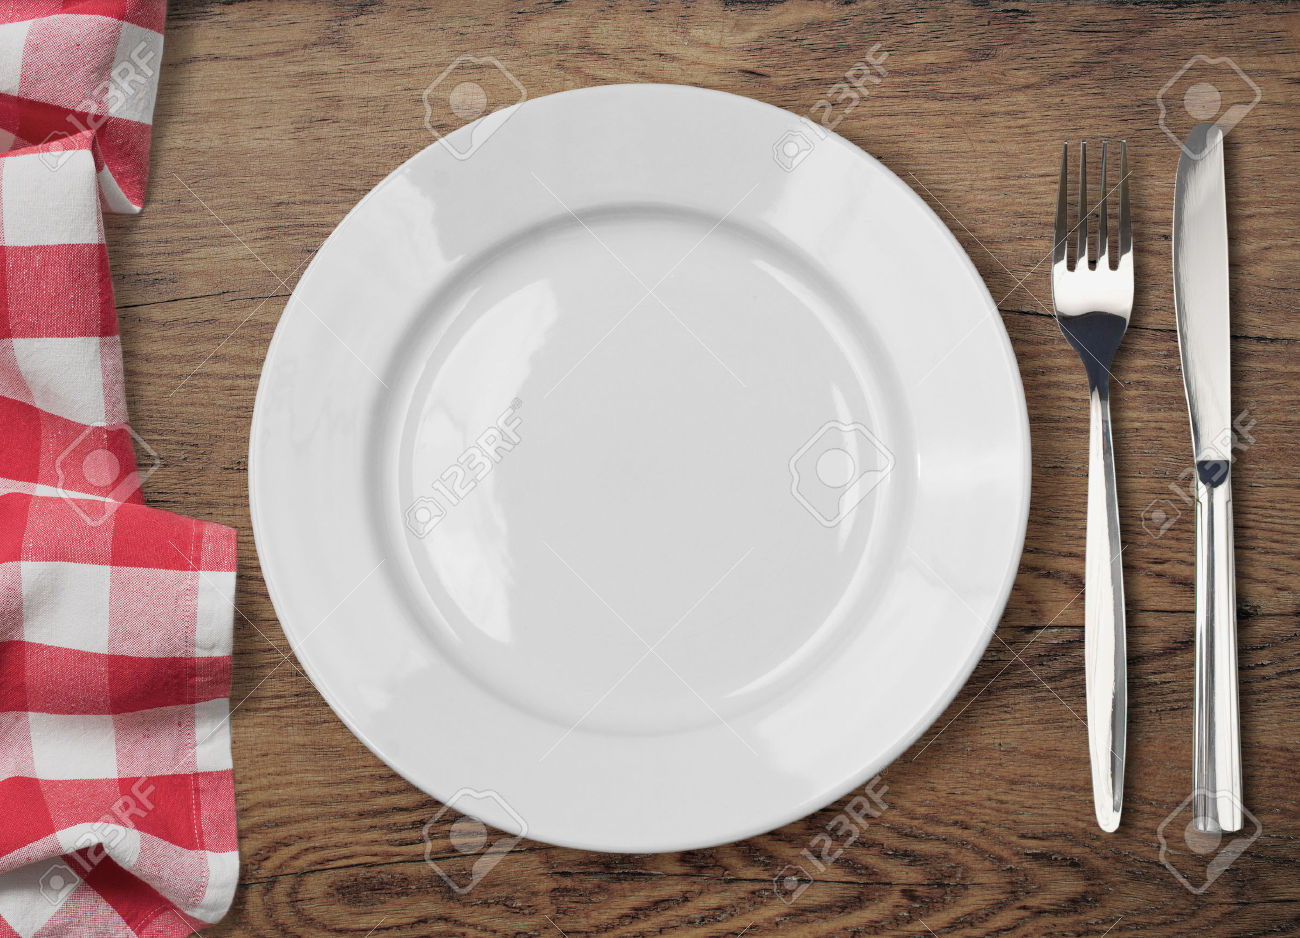 37935649-dinner-table-with-dinning-plate-fork-and-knife-top-view-Stock-Photo